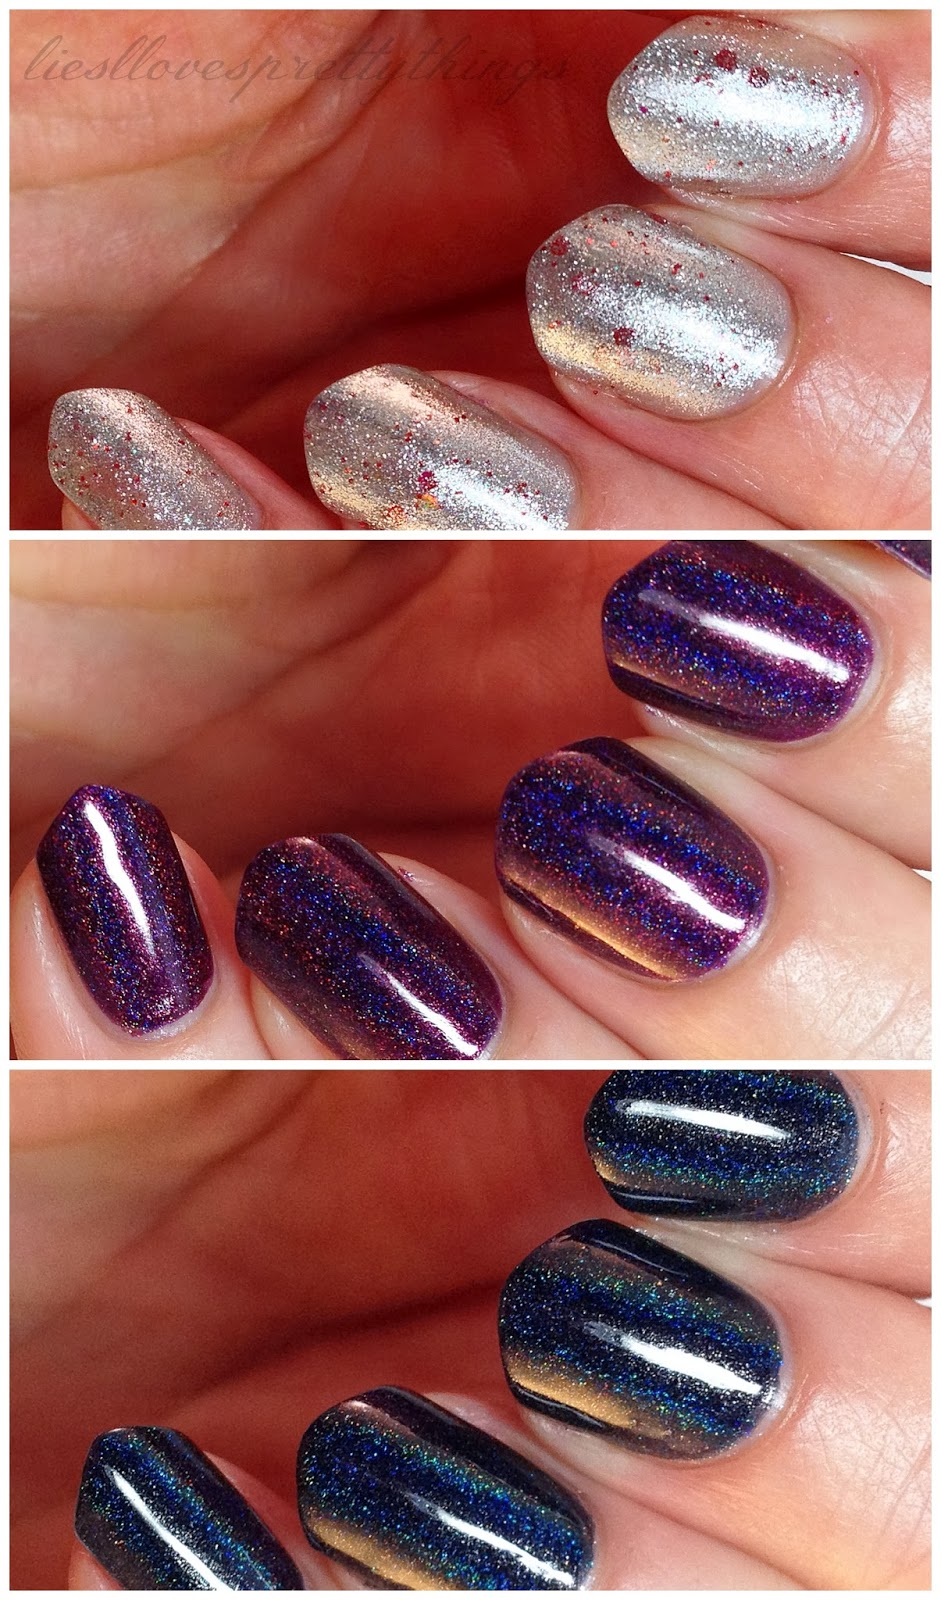 Celestial Cosmetics nail polish swatch and review